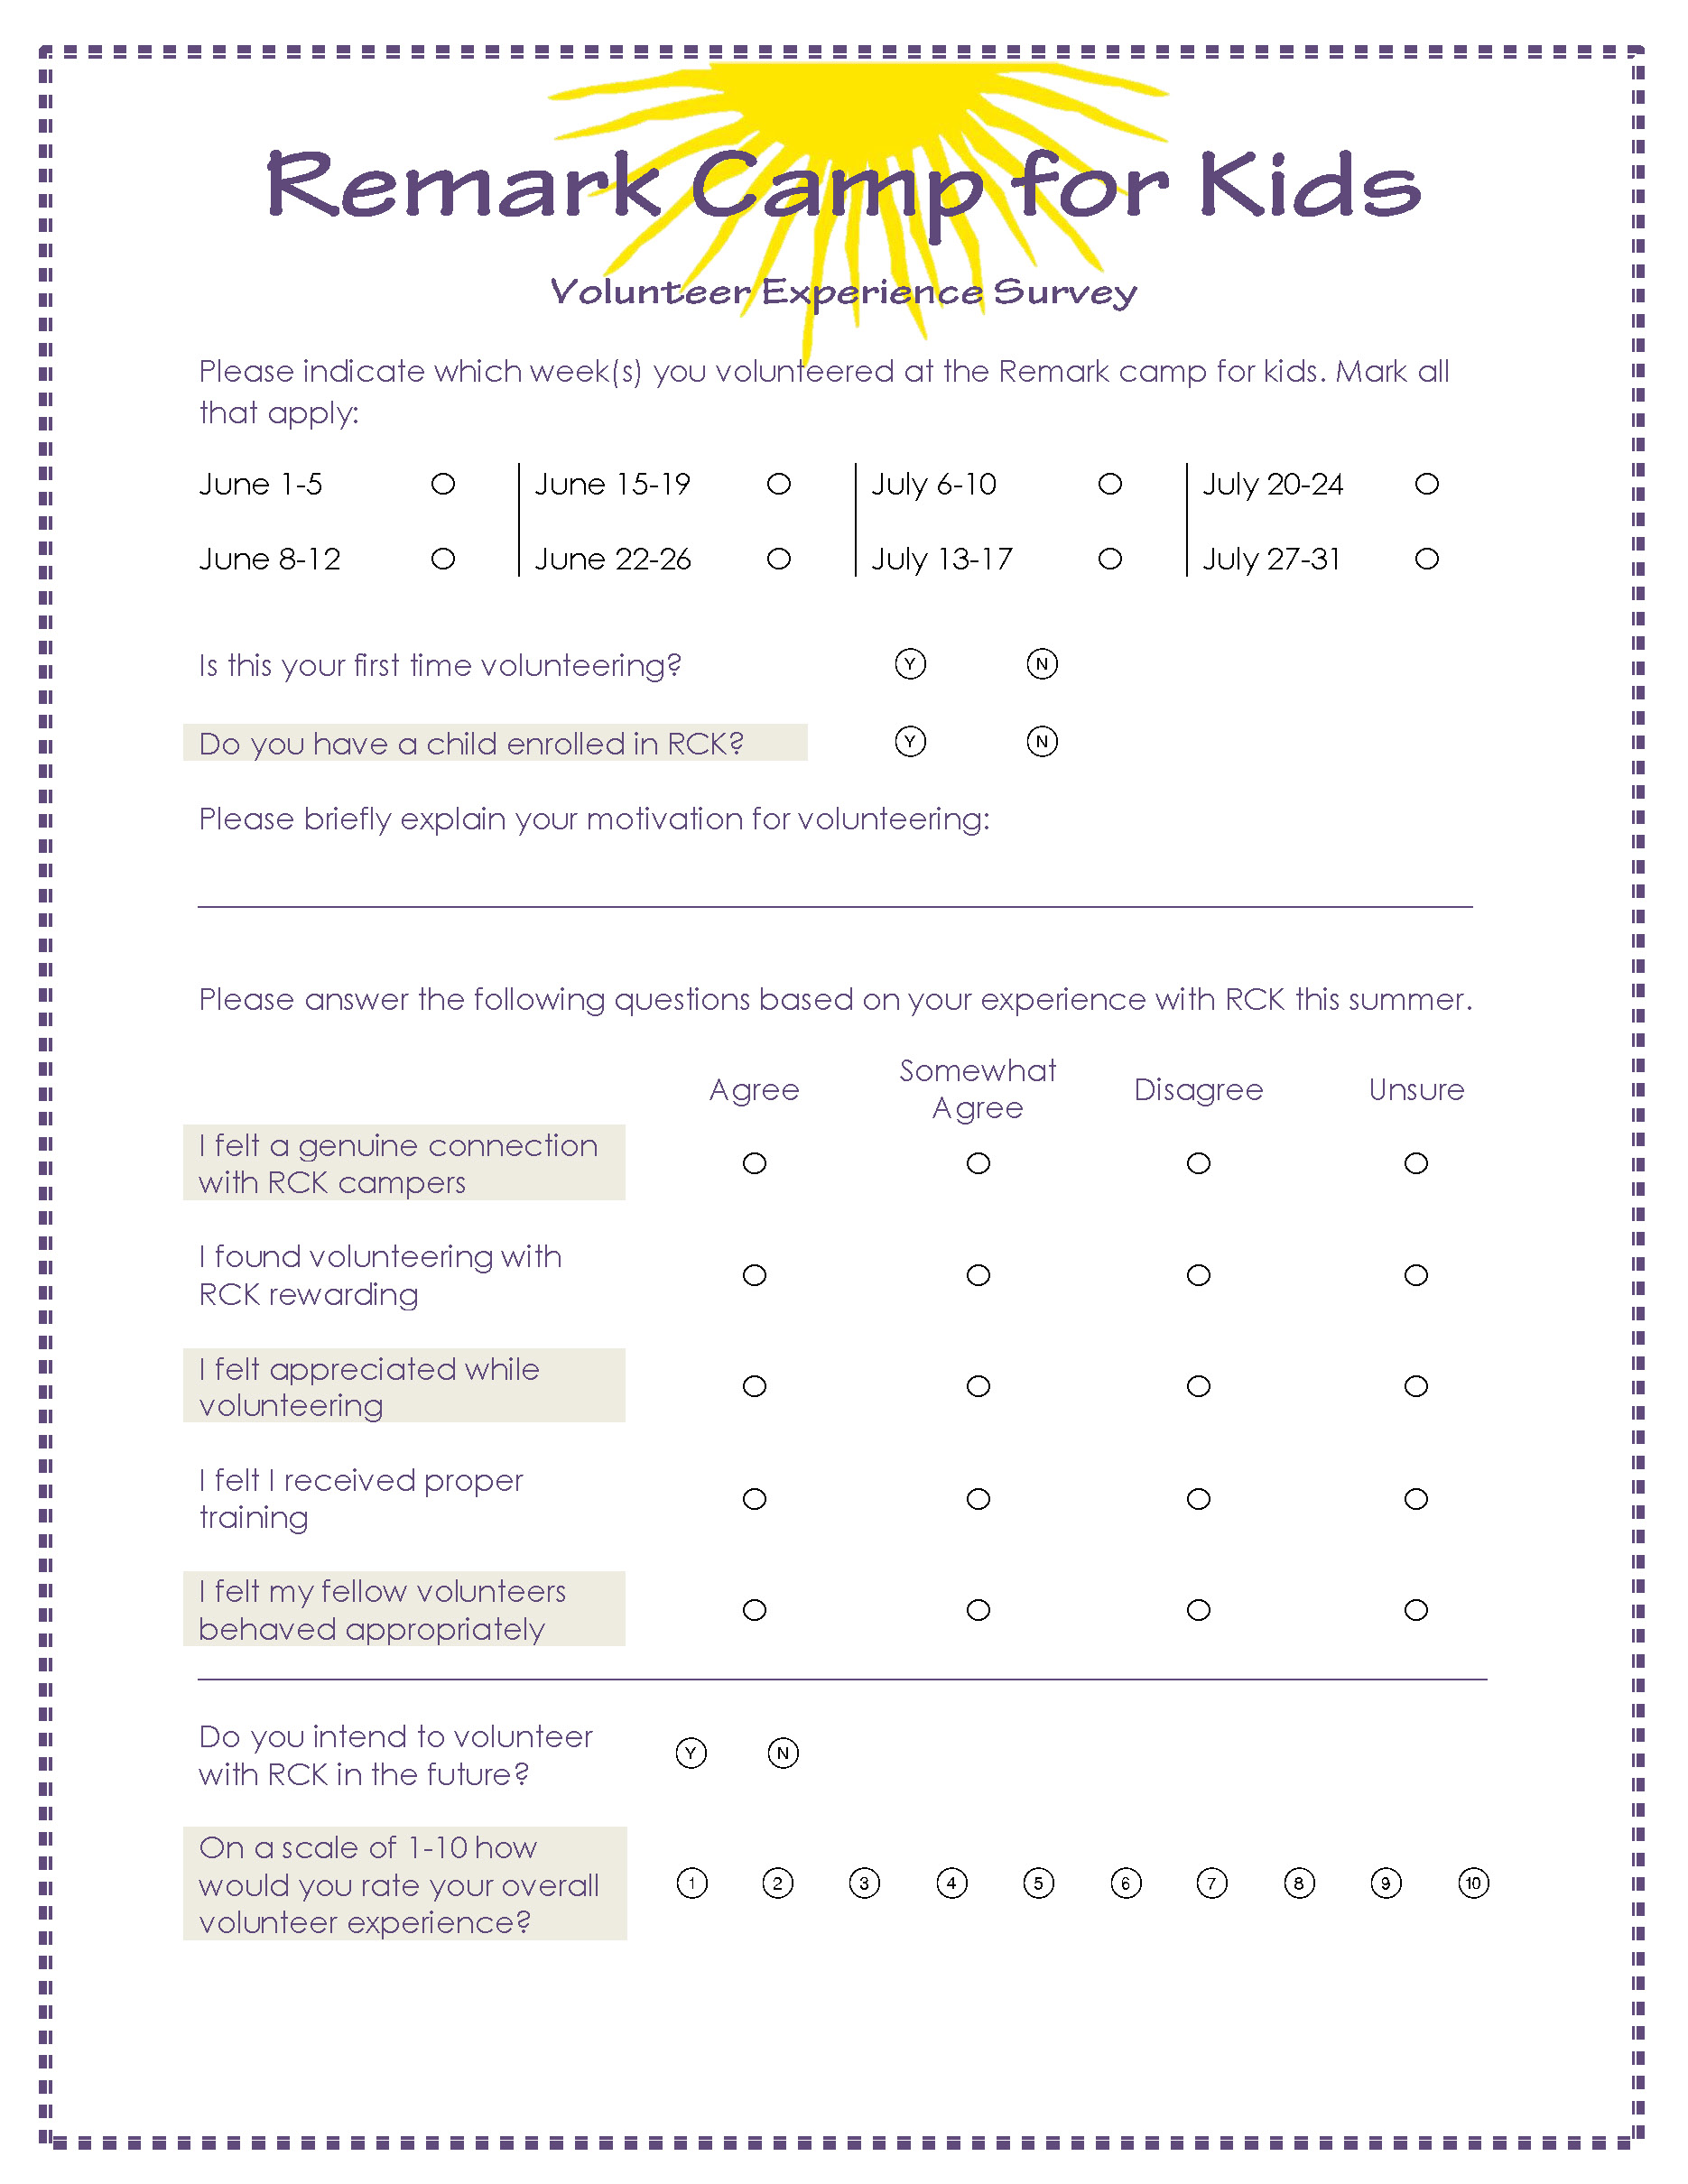 volunteer questionnaire template - volunteer experience survey remark software